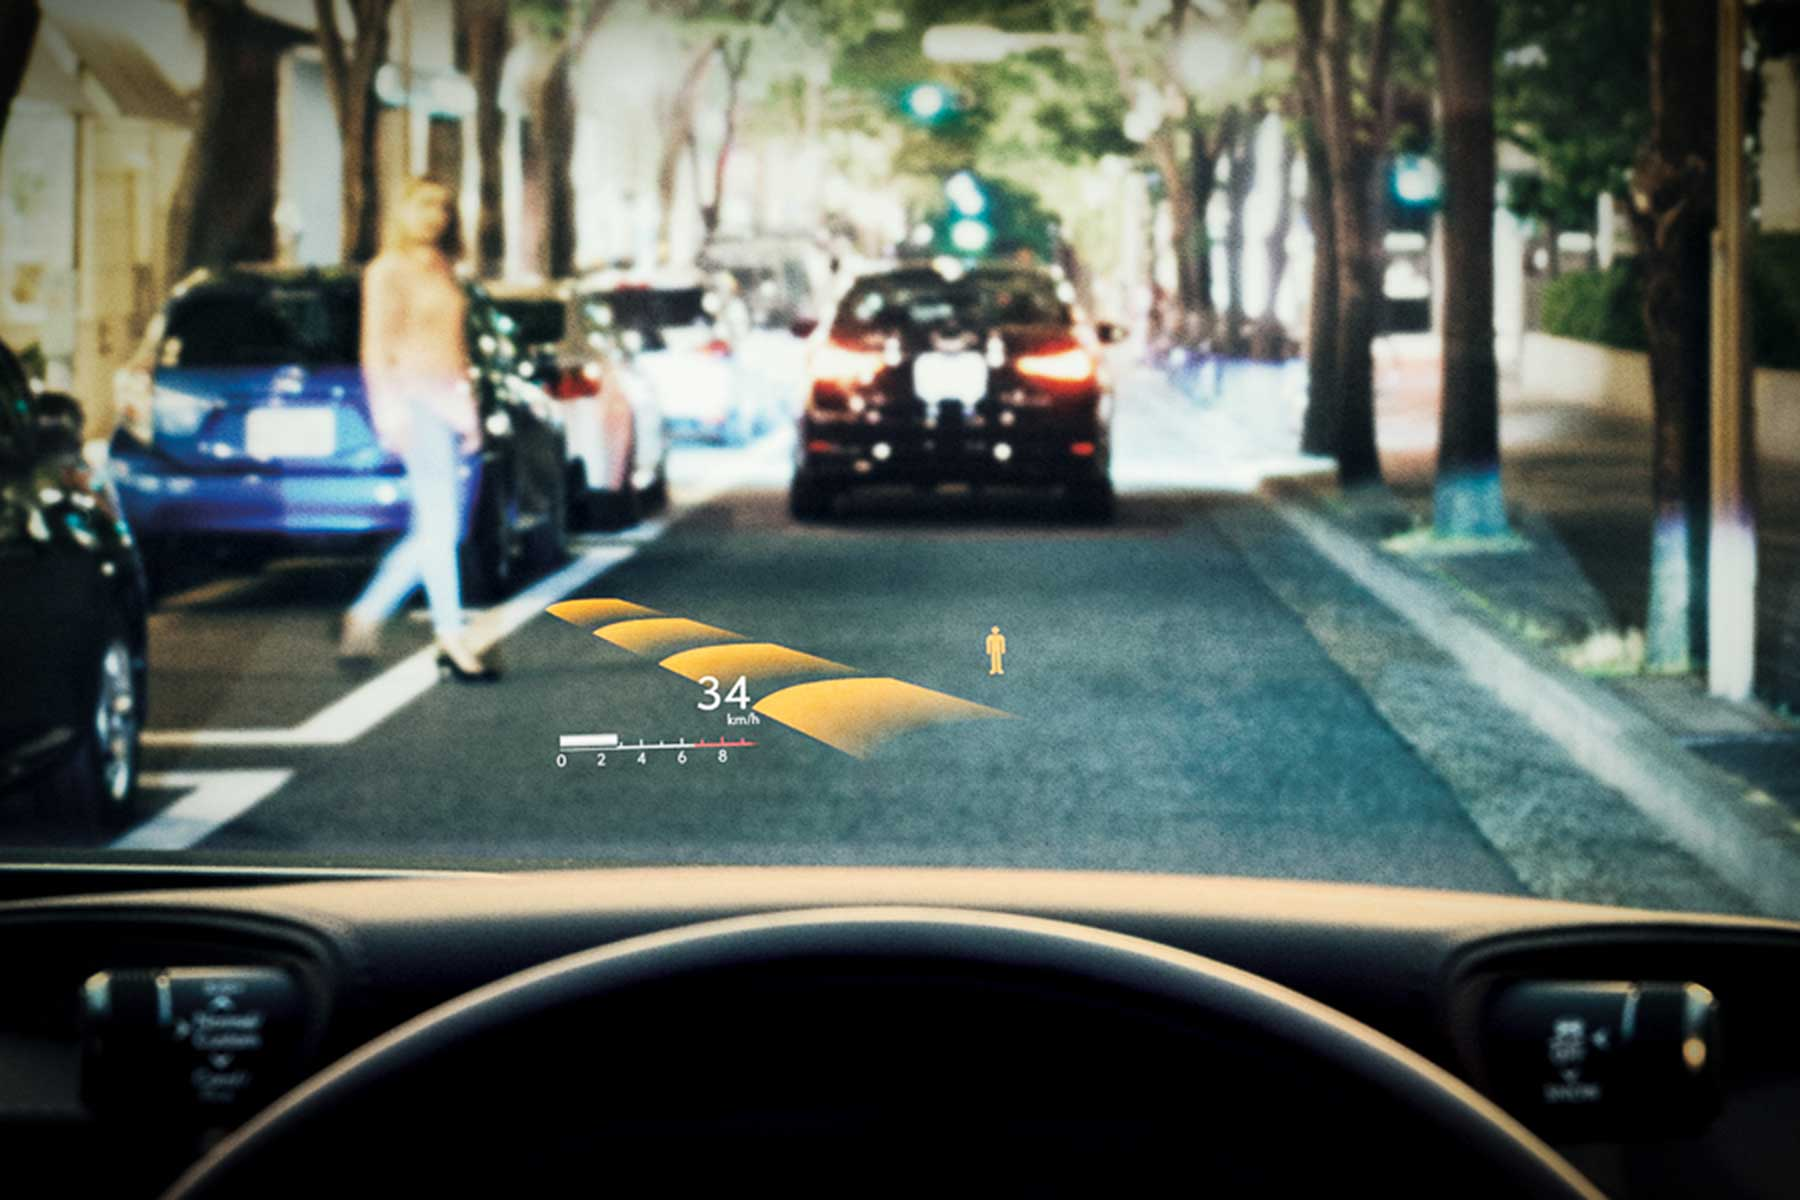 New Lexus Ls Has The World S Largest Head Up Display Motoring Research